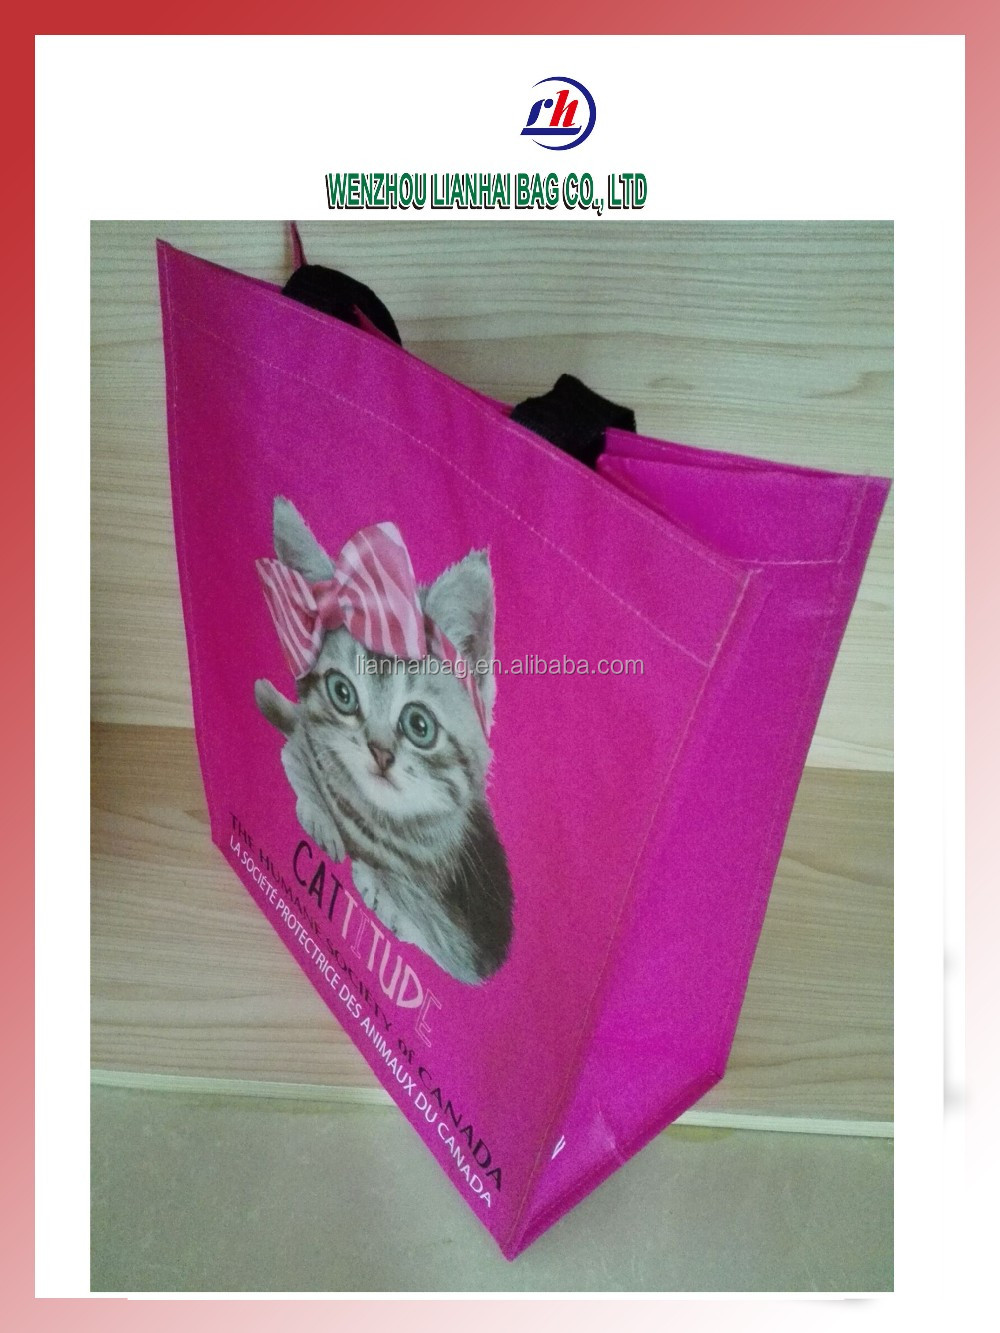 Laminated on PP Woven Shopping Bag gym sack